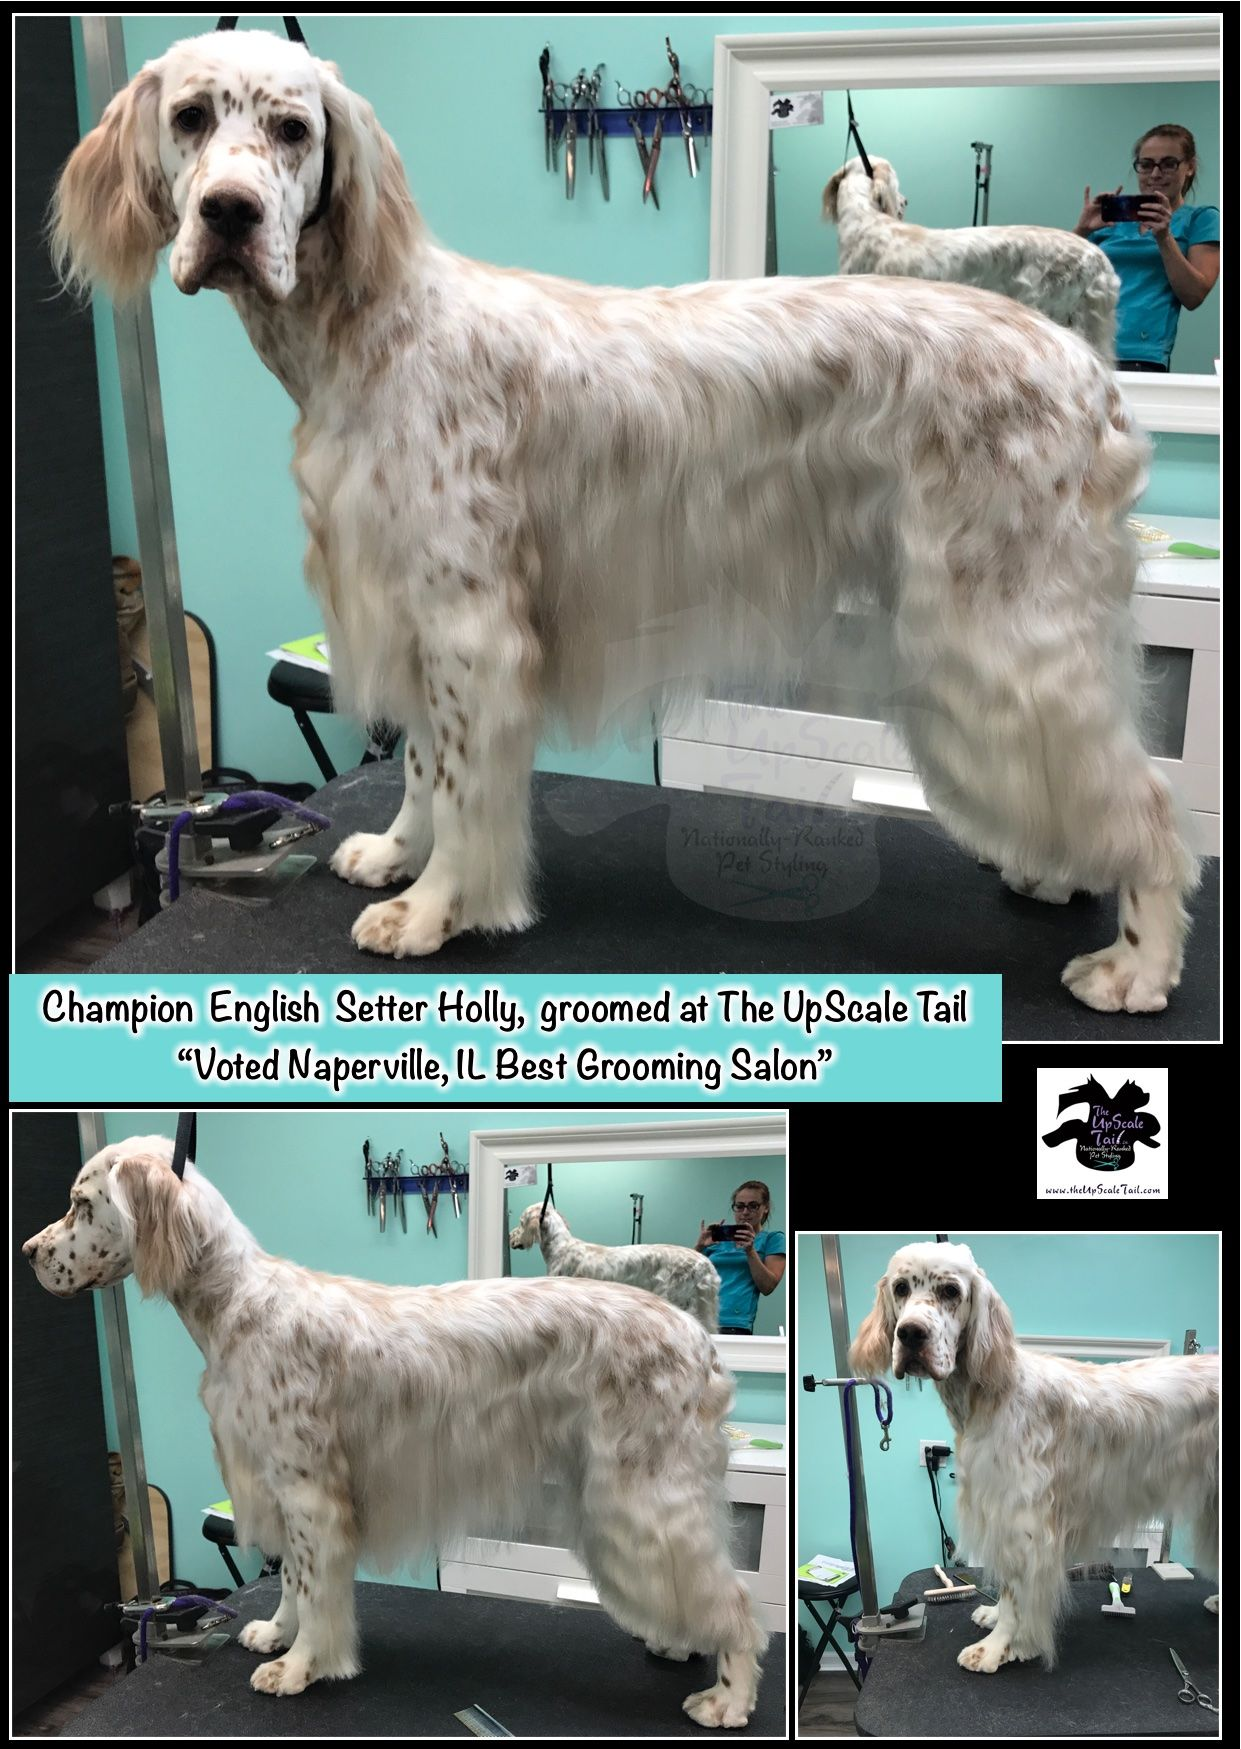 All Breed Show Dog And Rare Breed Grooming At The Upscale Tail Voted Naperville Il Pet Man Dog Pet Grooming Rare Dog Breeds